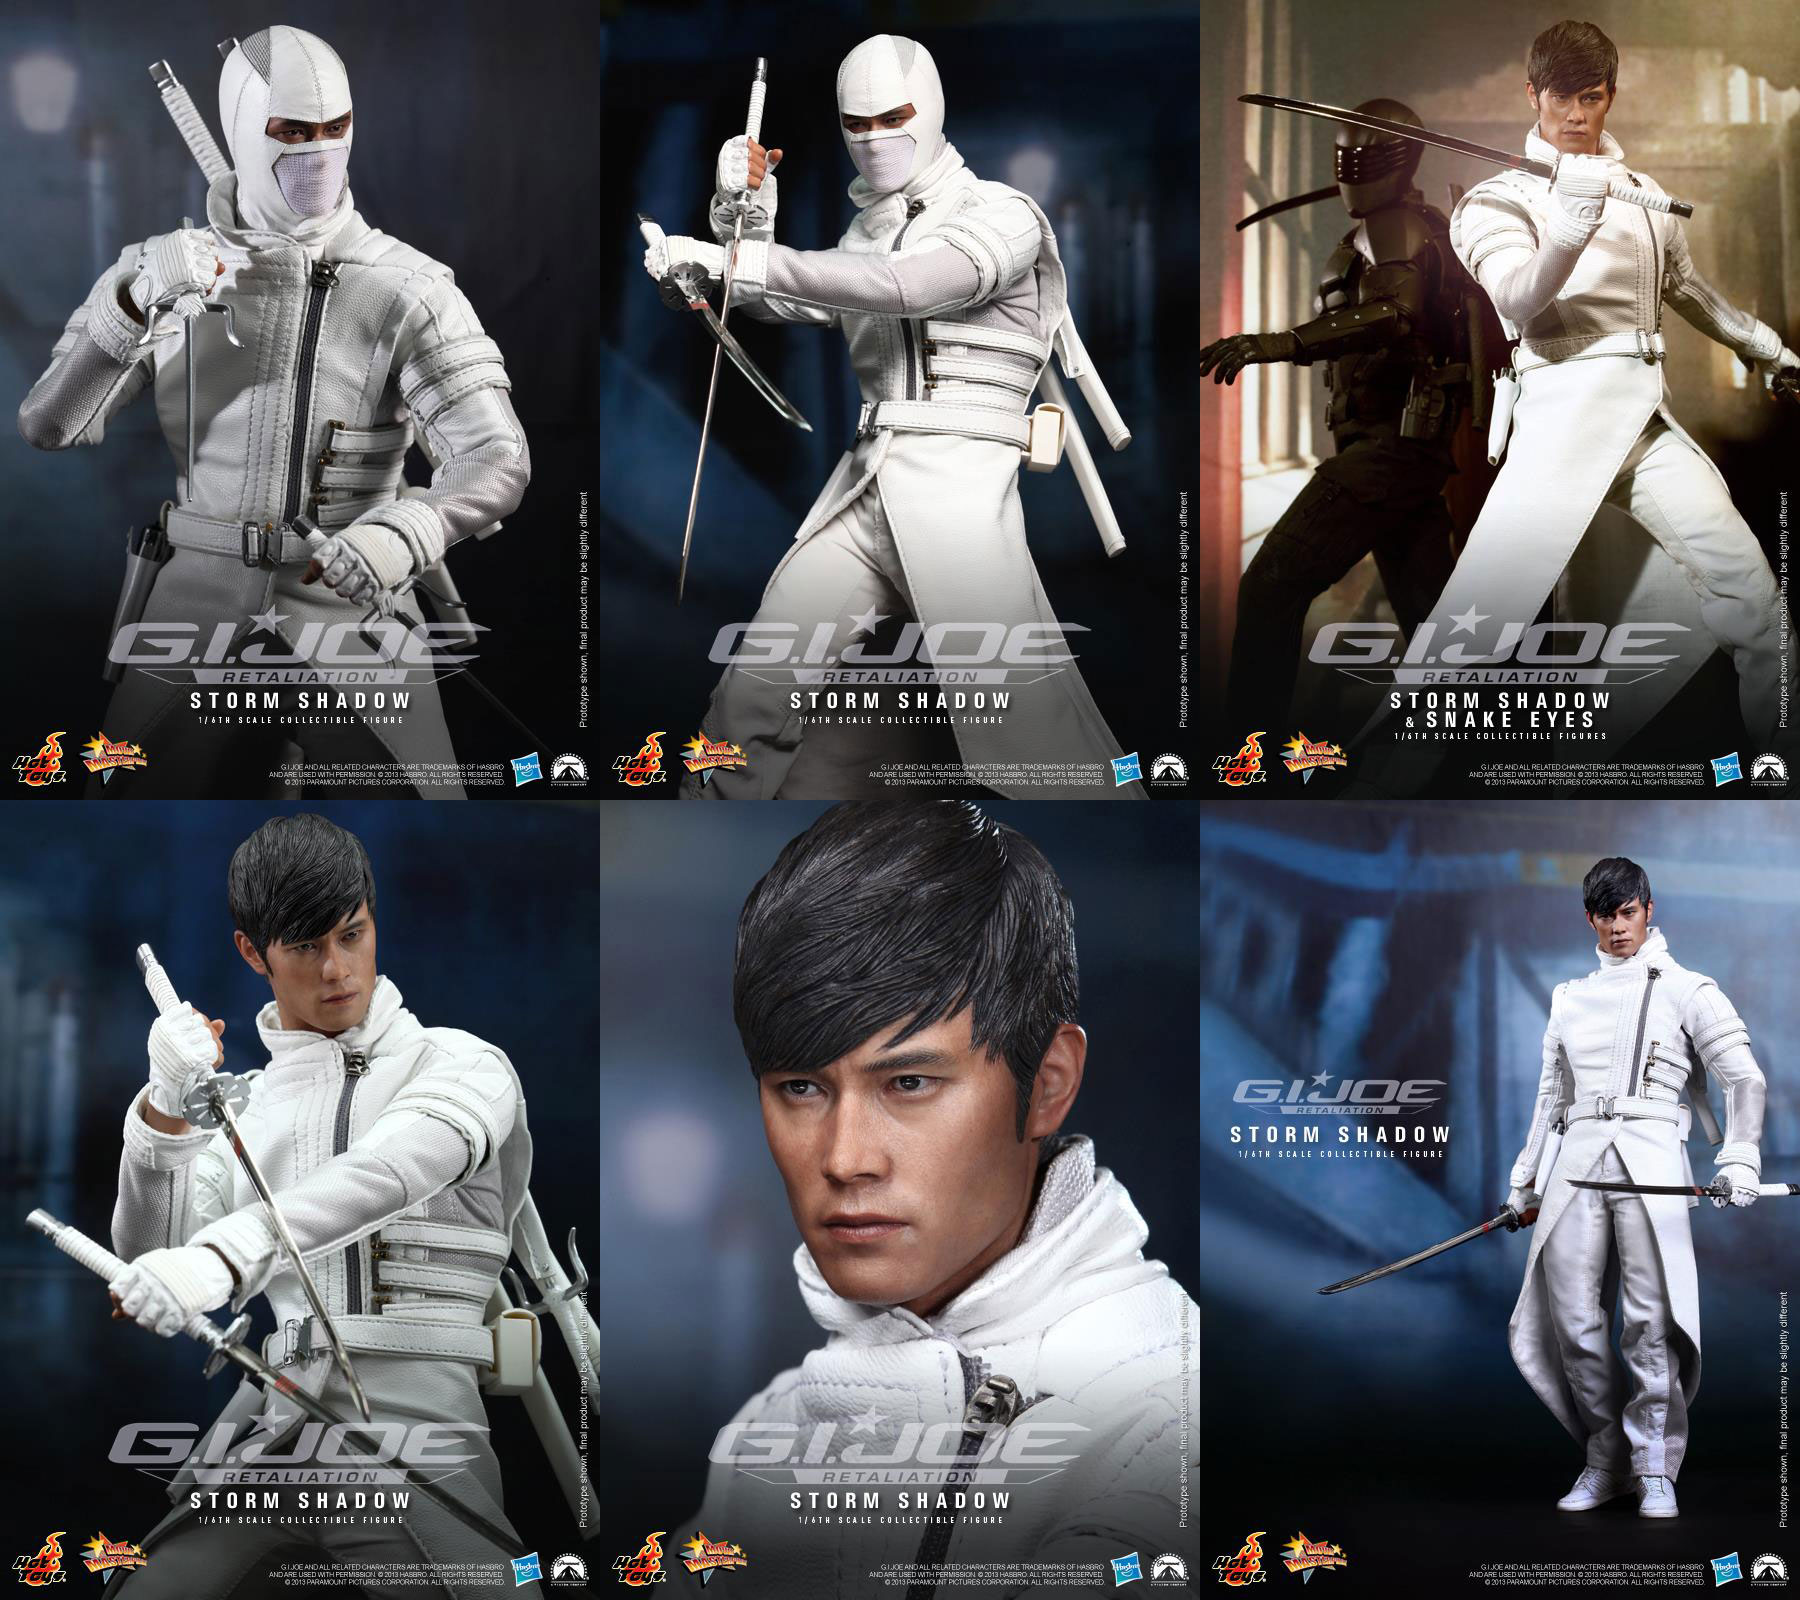 The G I Joe Movie Fanblog: The Reveal of Storm Shadow 1/6 by Hot